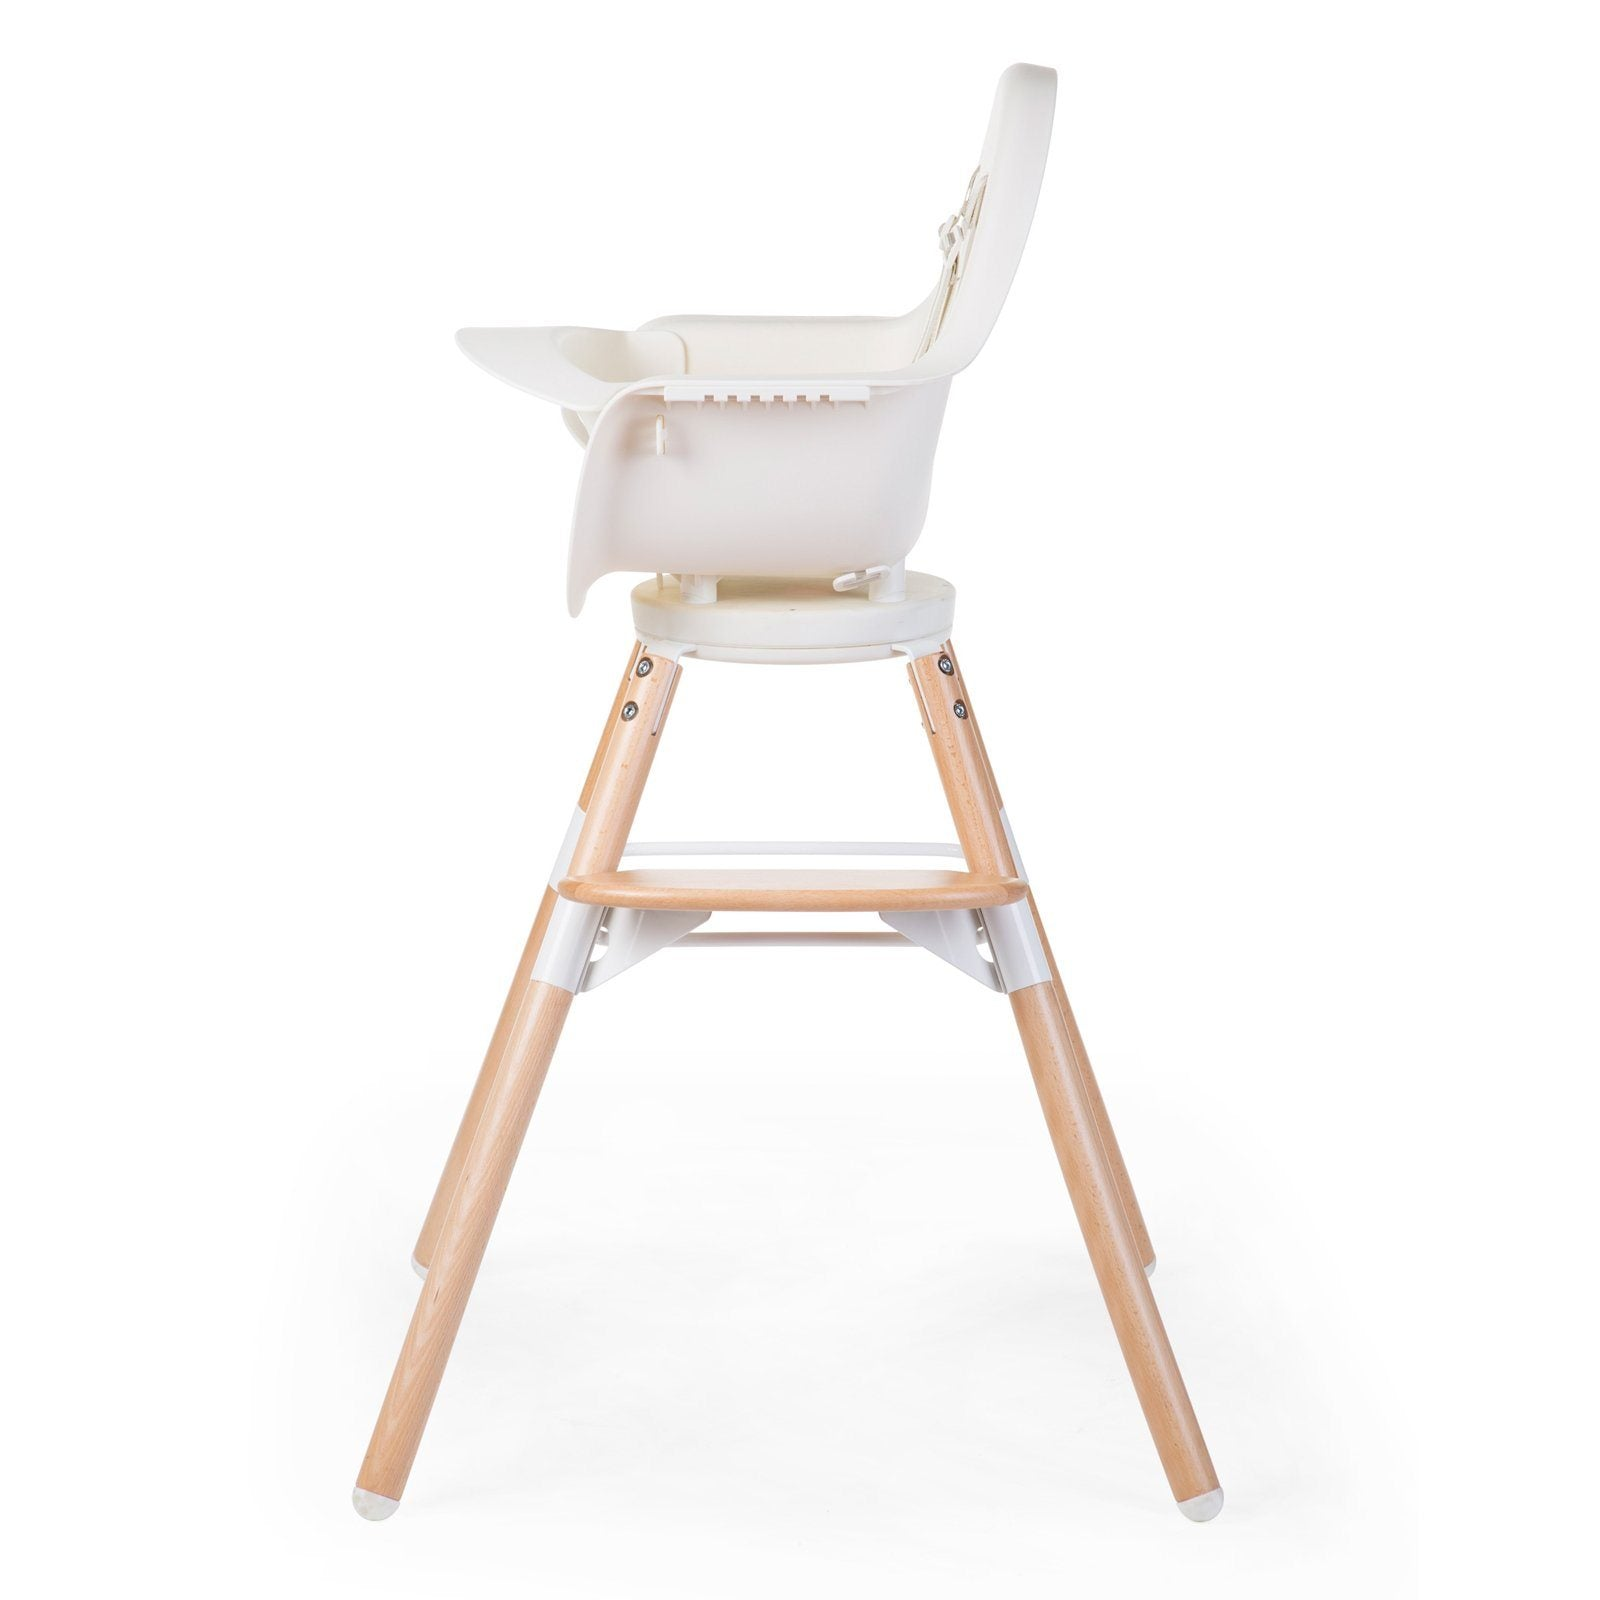 Evolu One.80° Chair - Natural White Childhome